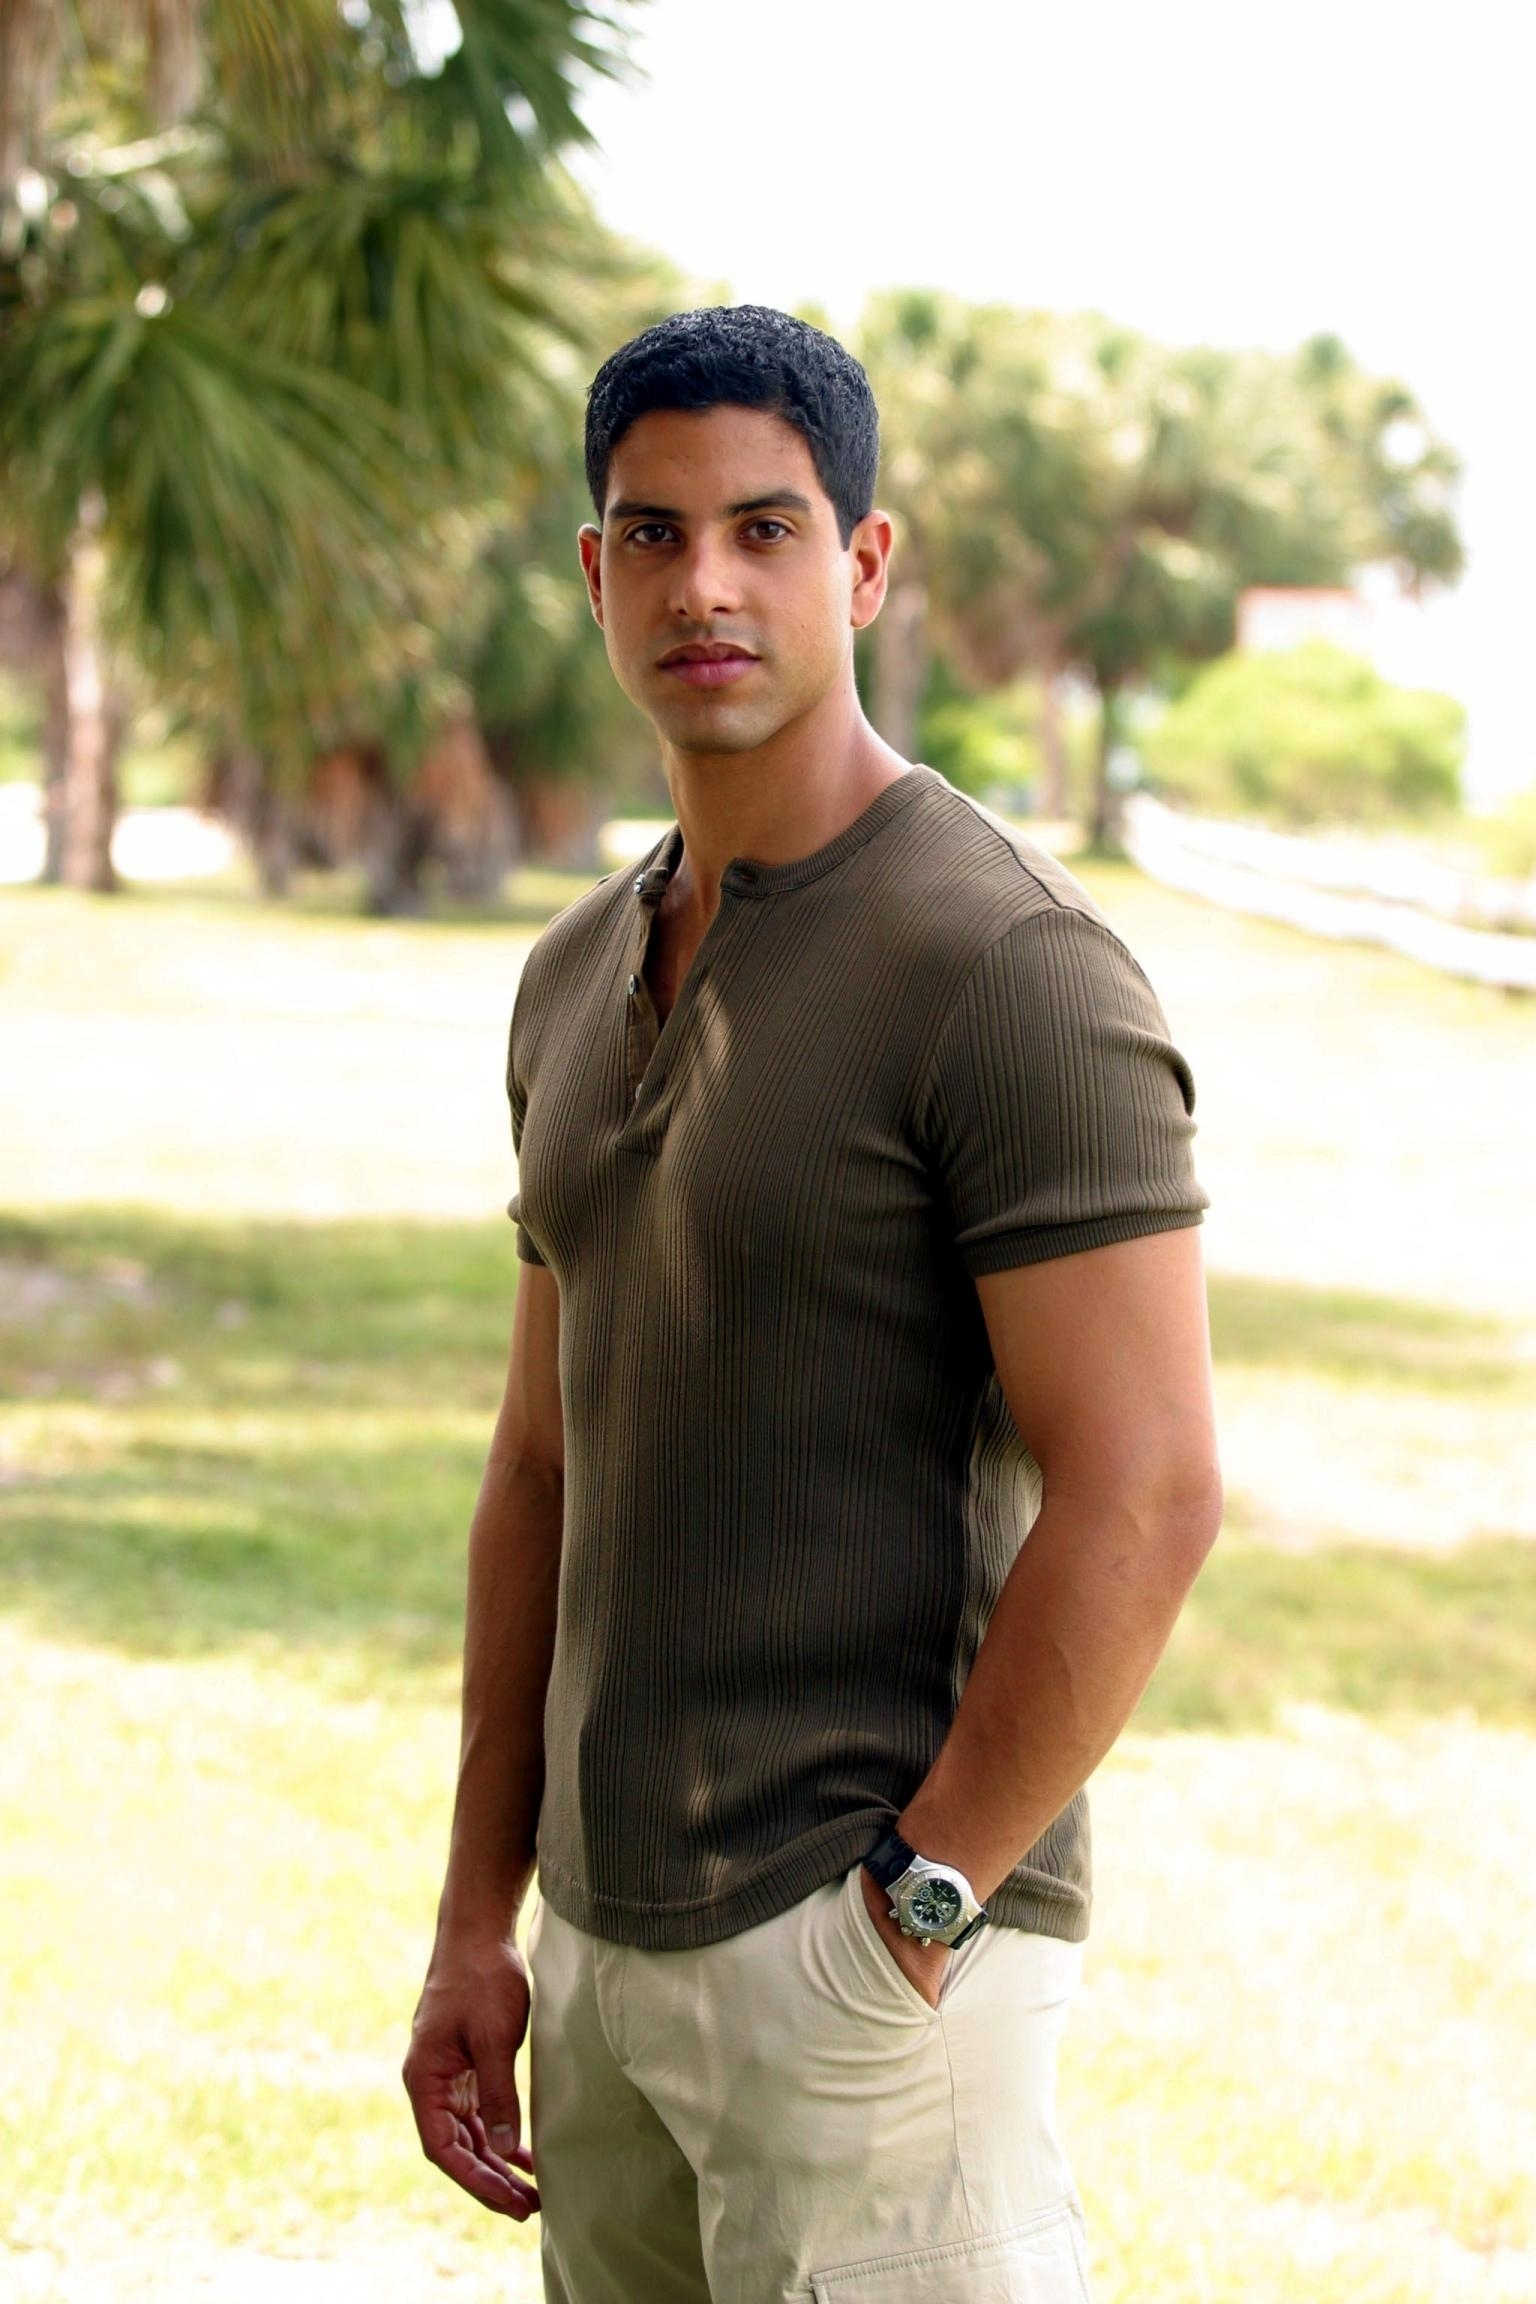 http://images2.fanpop.com/images/photos/7100000/Adam-adam-rodriguez-7142555-1536-2304.jpg